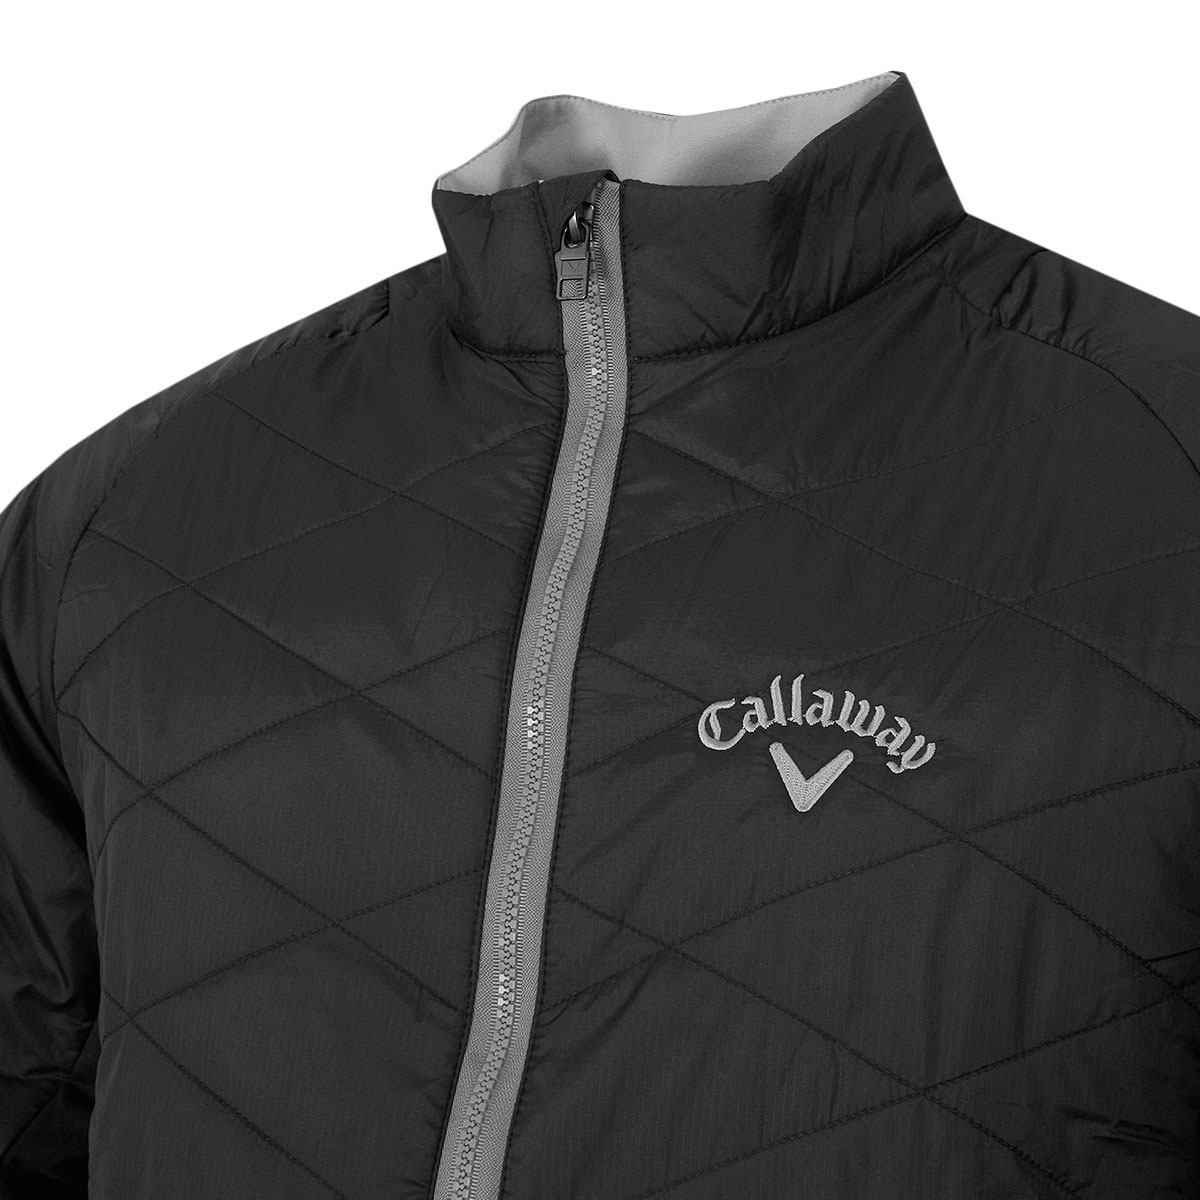 Callaway-Golf-Mens-Performance-Stretch-Quilted-Padded-Jacket-29-OFF-RRP thumbnail 4